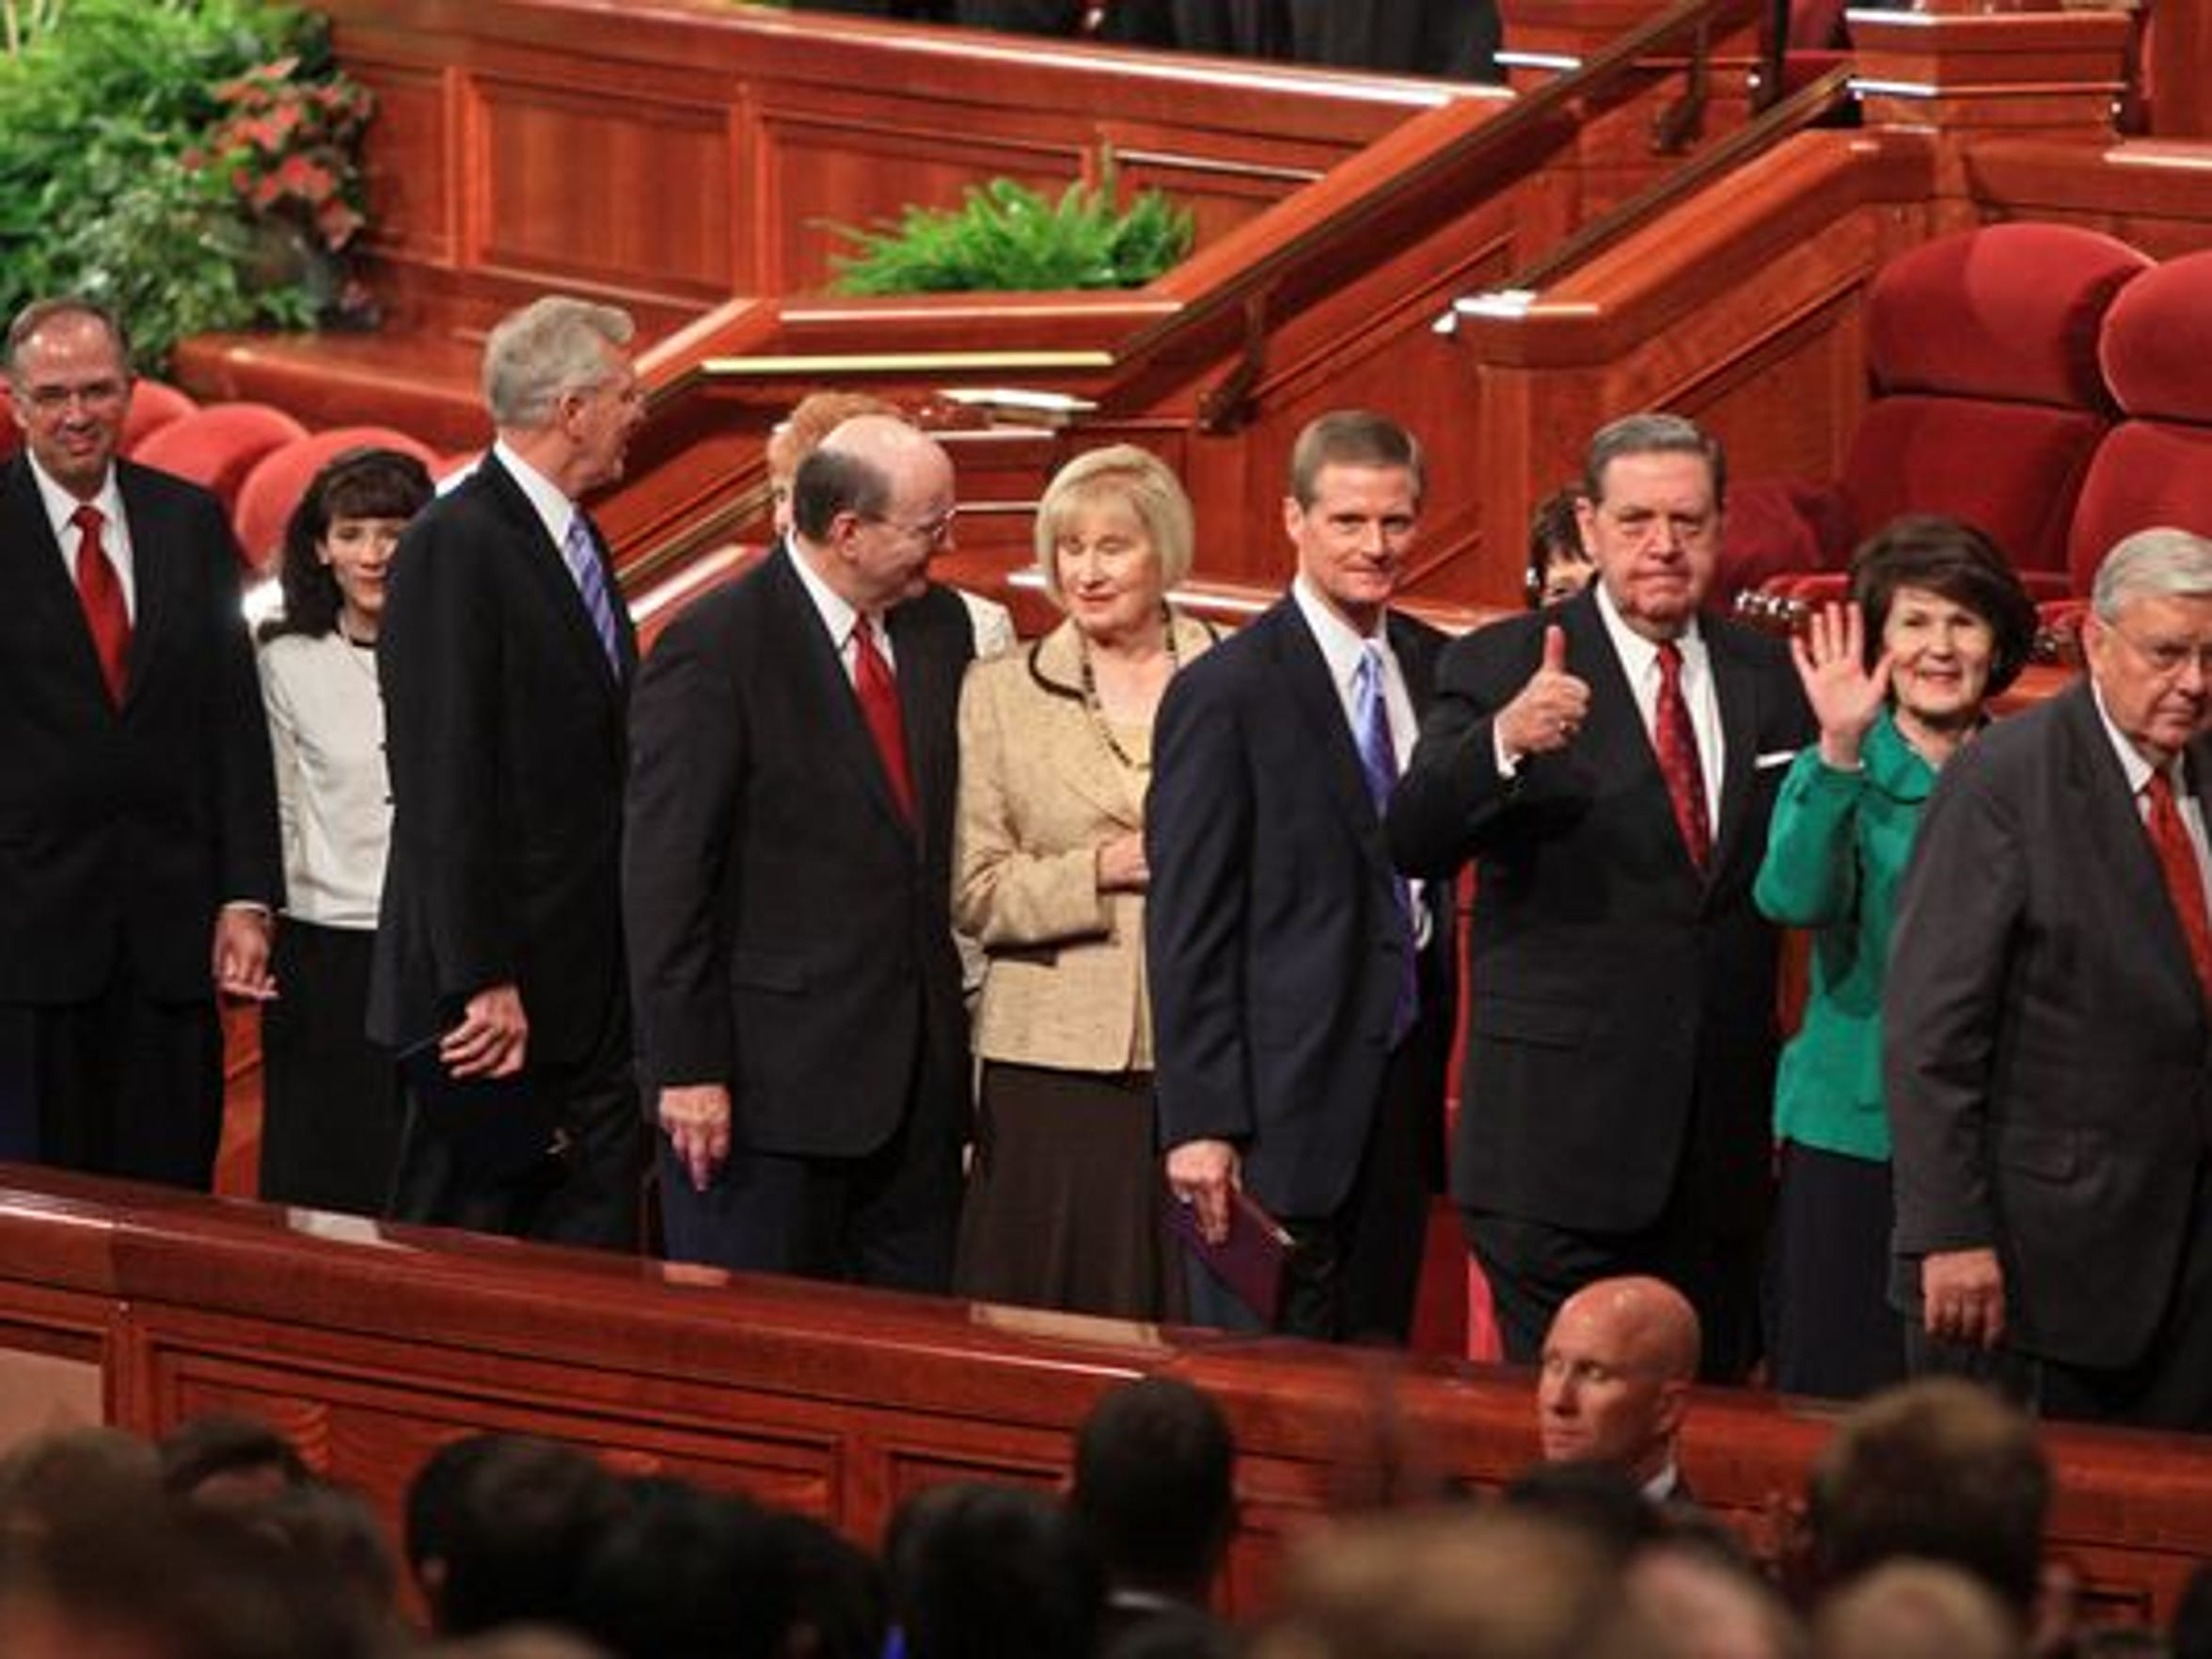 The Quorum of the Twelve Apostles of The Church of Jesus Christ of Latter-day Saints leave the Conference Center in Salt Lake City following a session of the church's General Conference in October 2011.